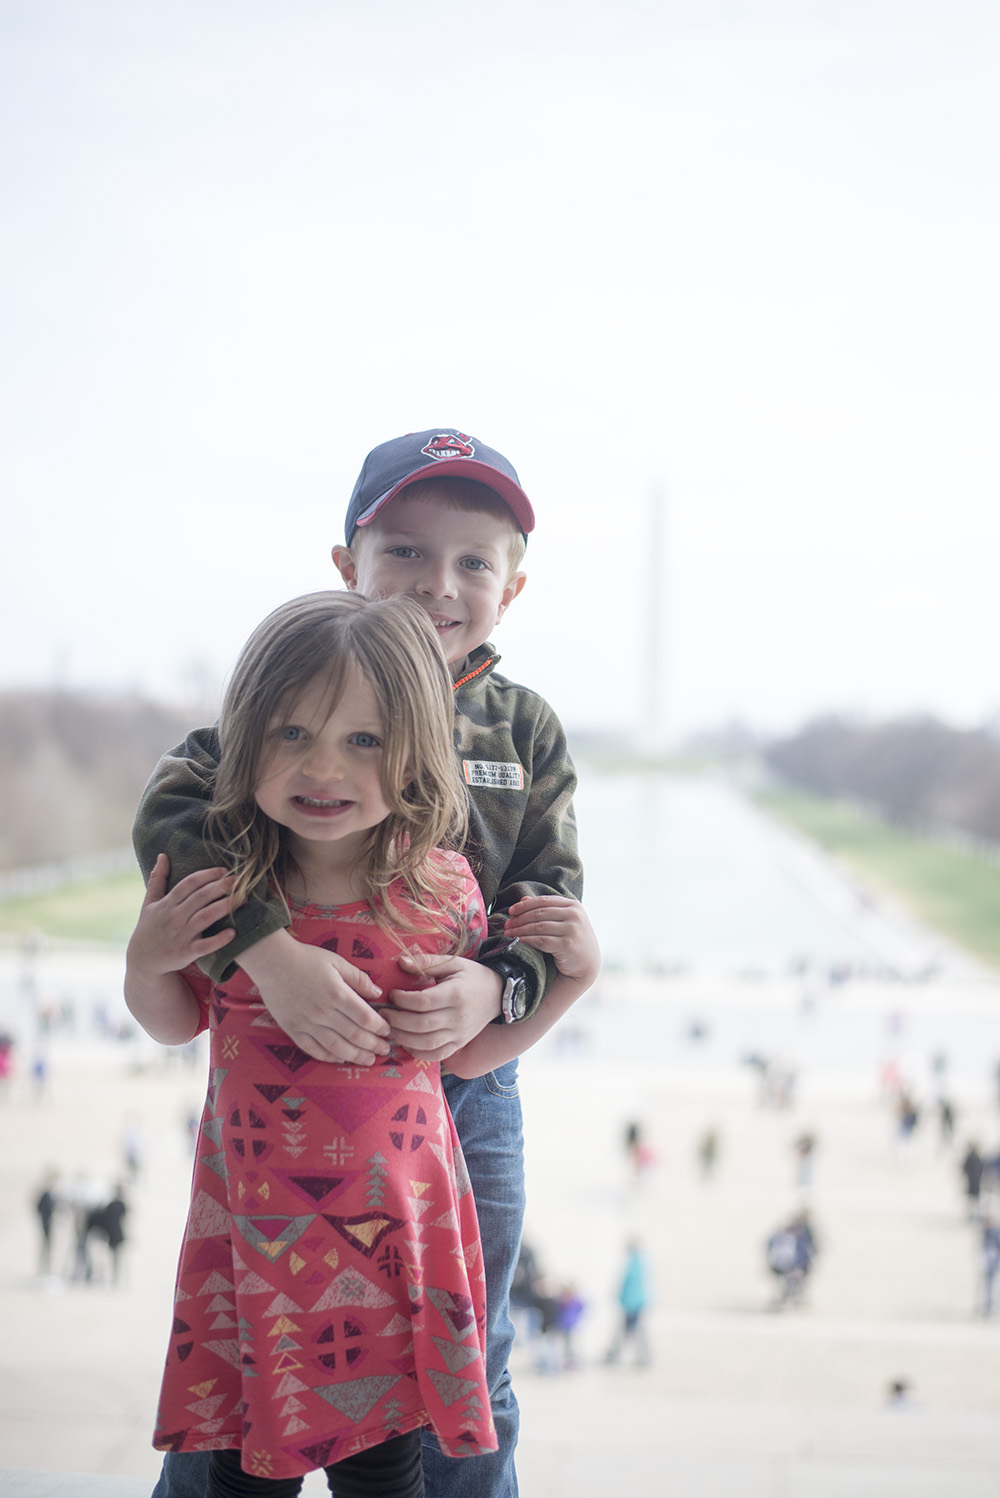 Since moving to Washington, D.C. I've picked up some tips and tricks on how to successfully travel with kids to the National Mall.